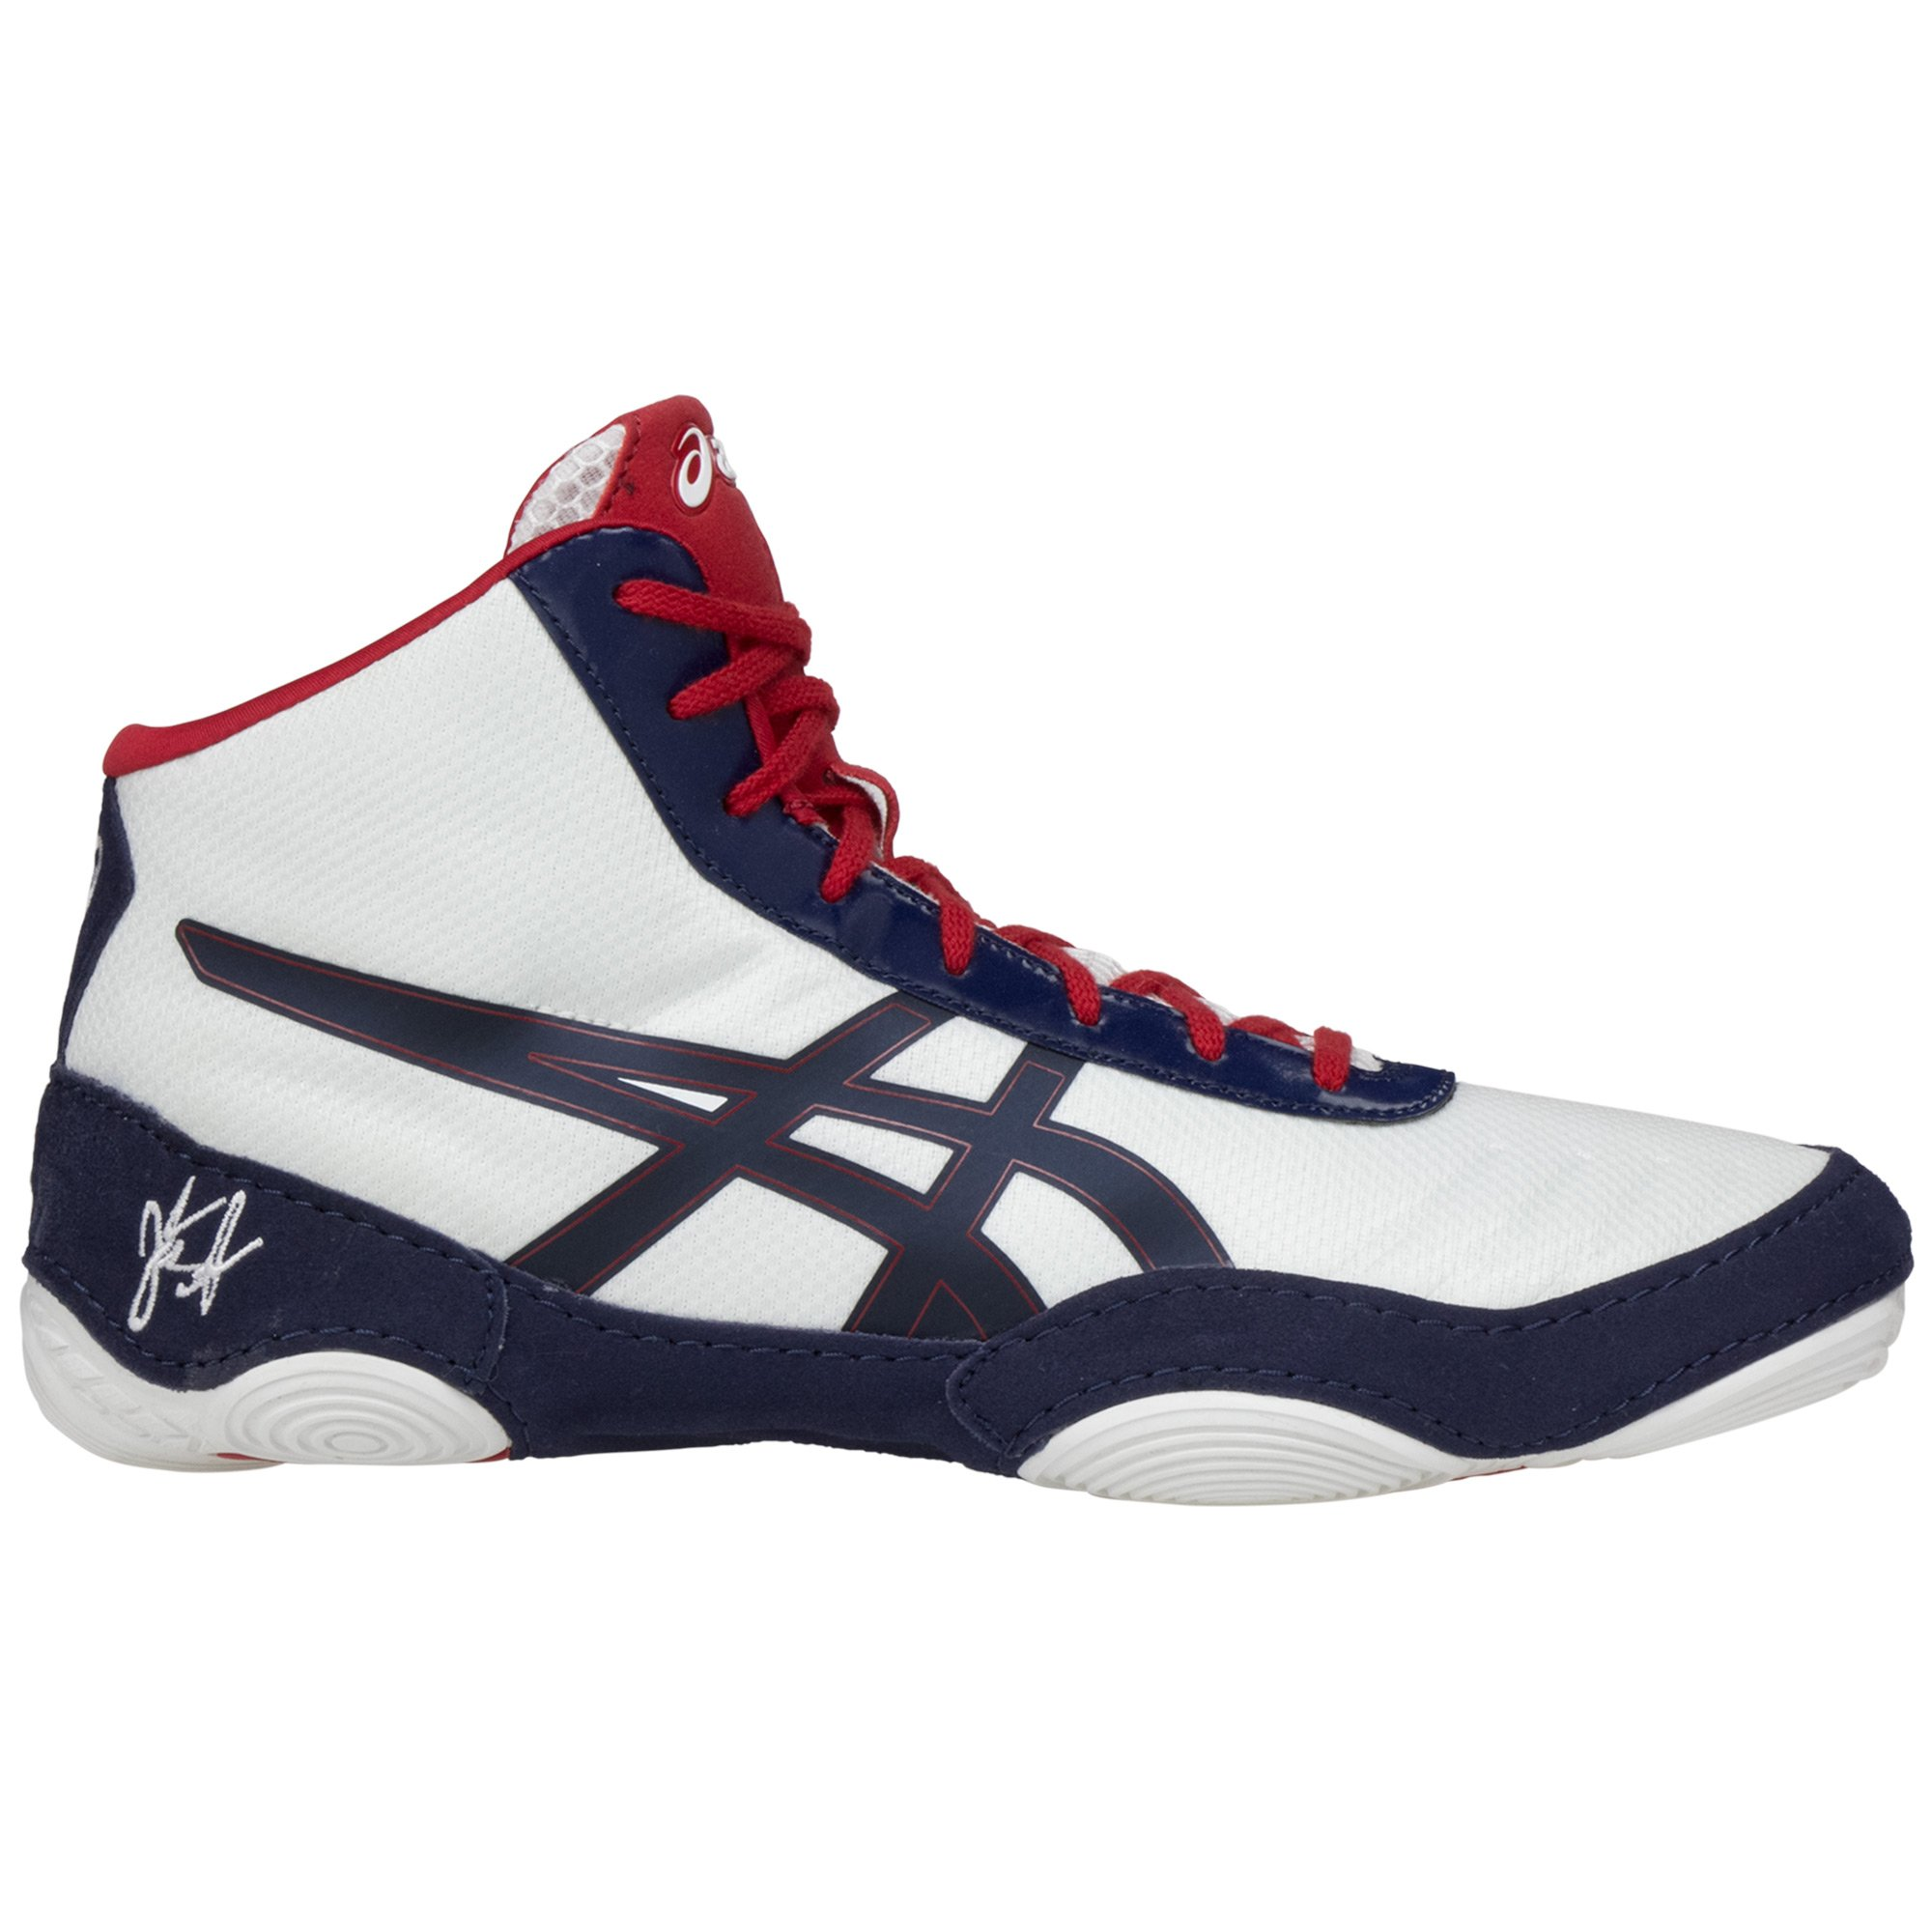 b7f0b9255d24 Asics JB Elite V2 White Navy Red ...